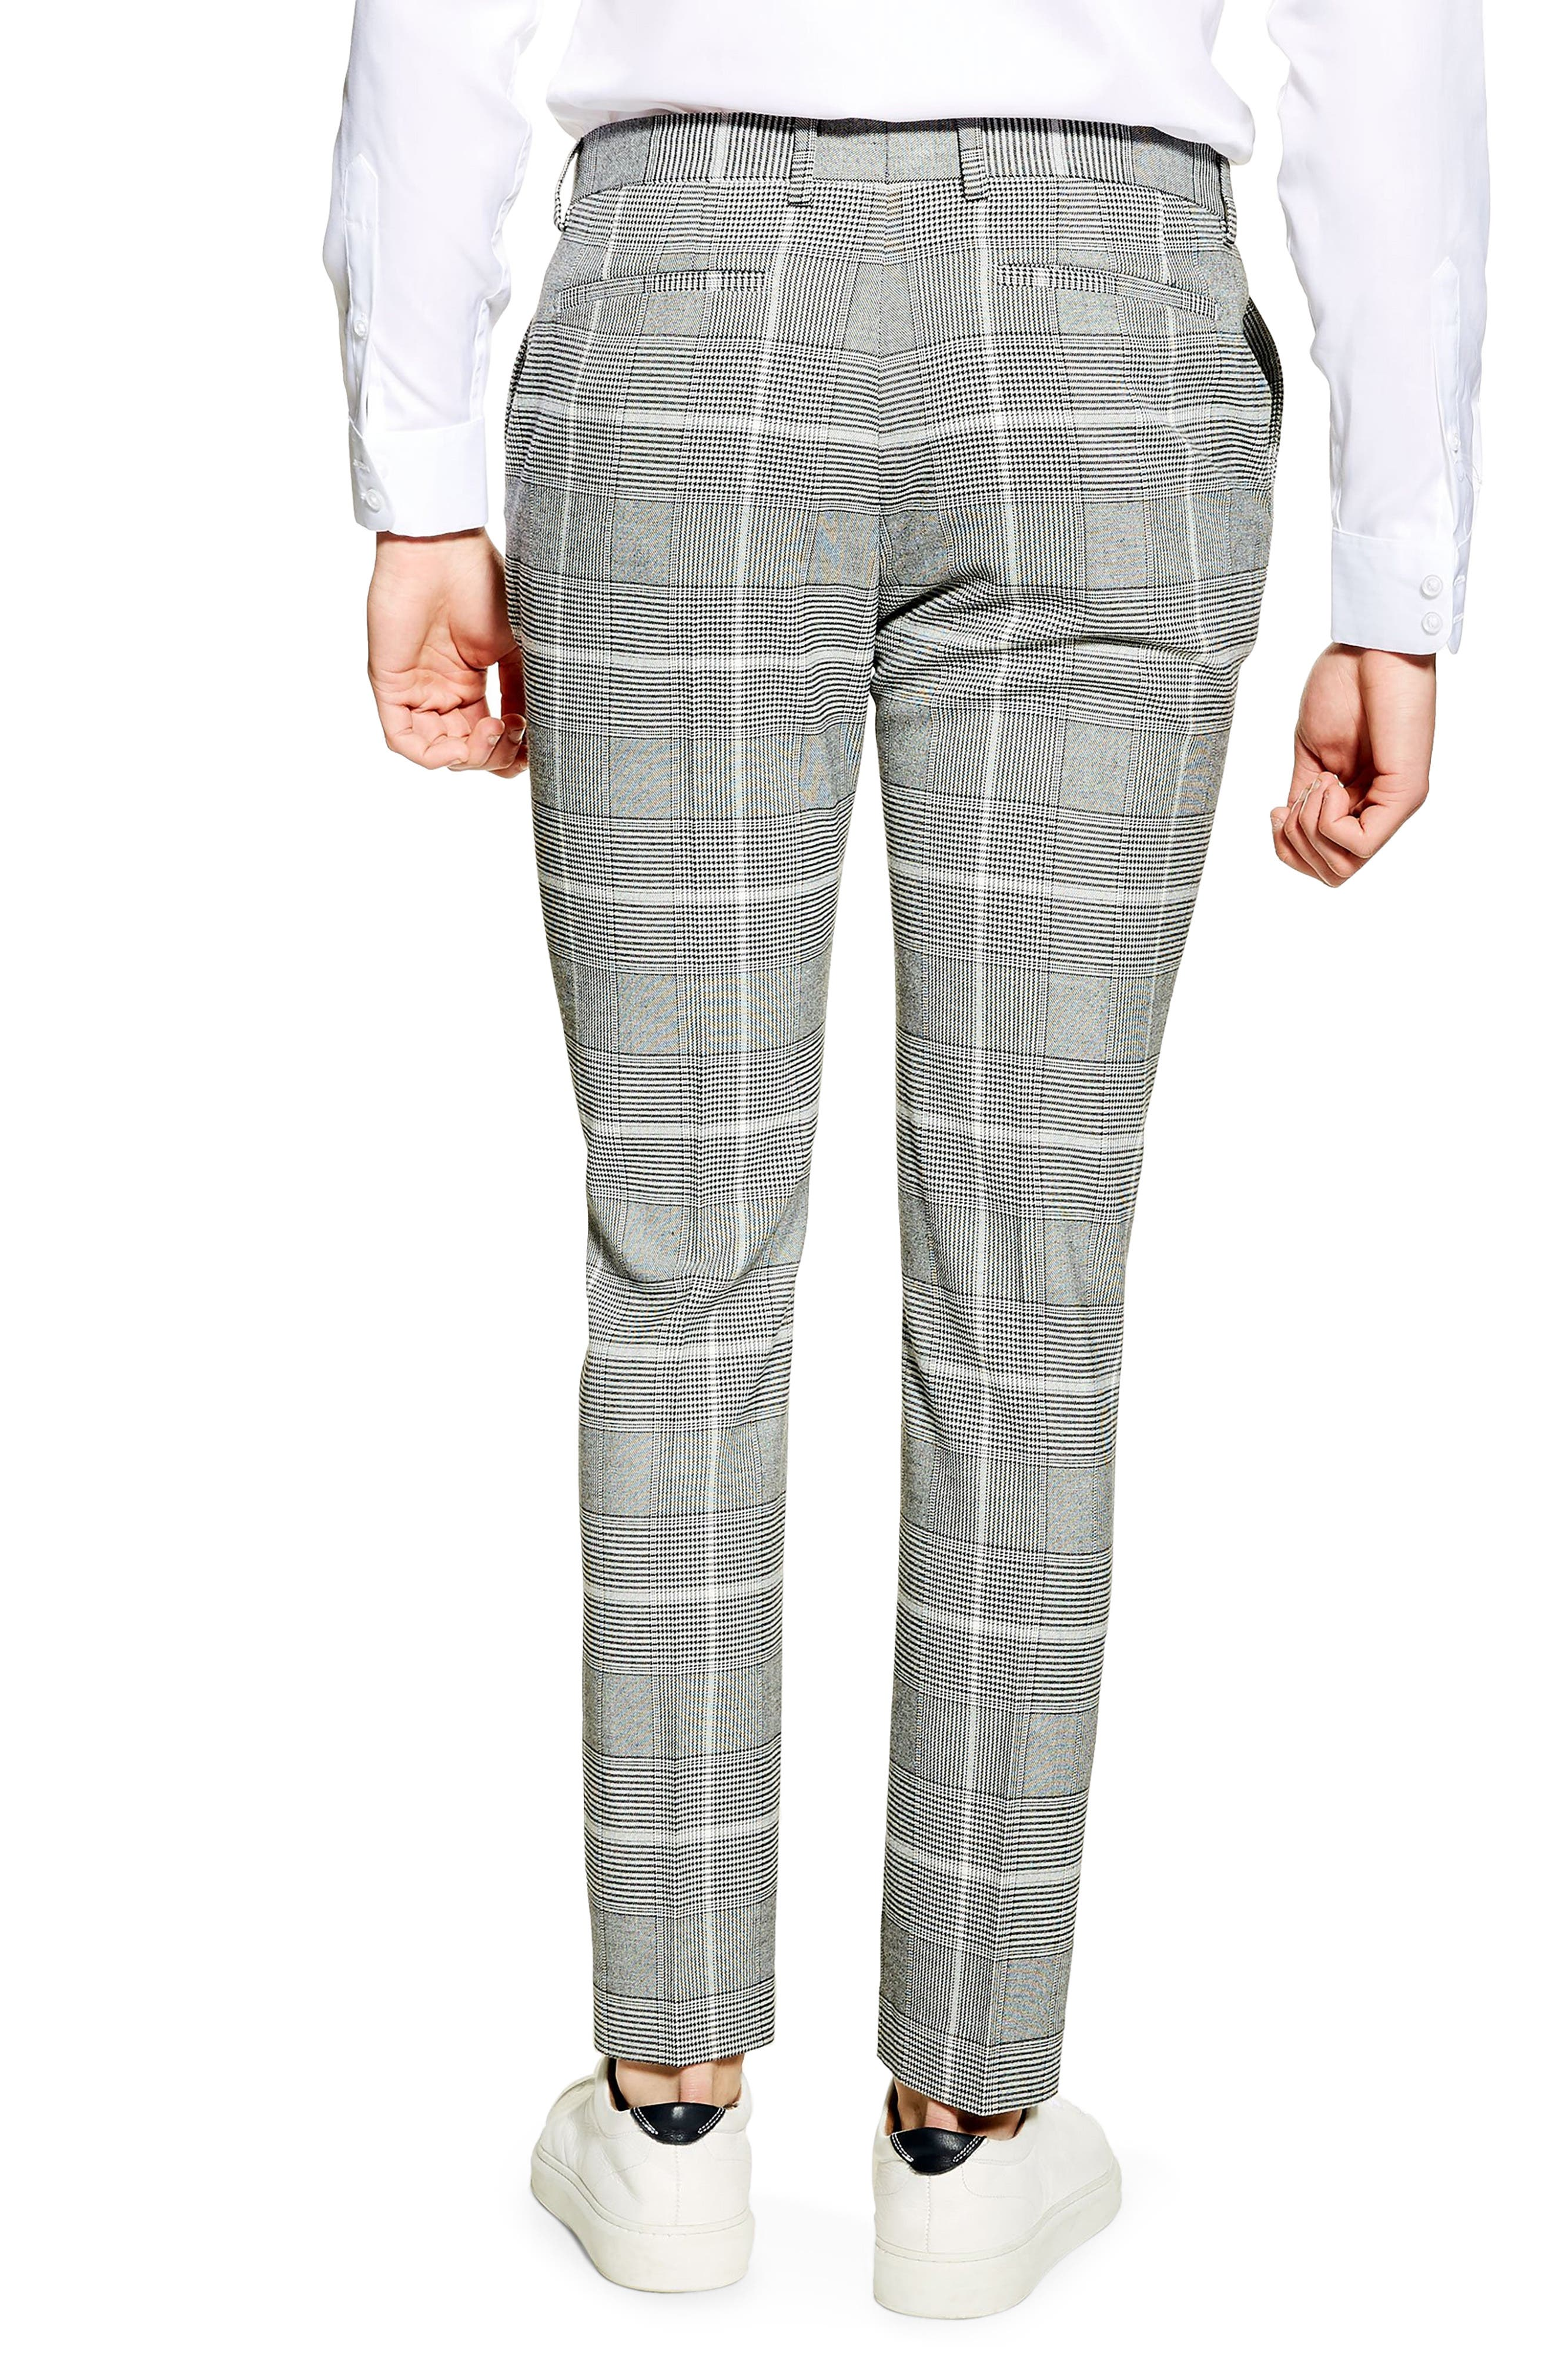 TOPMAN, Skinny Fit Check Trousers, Alternate thumbnail 2, color, 020